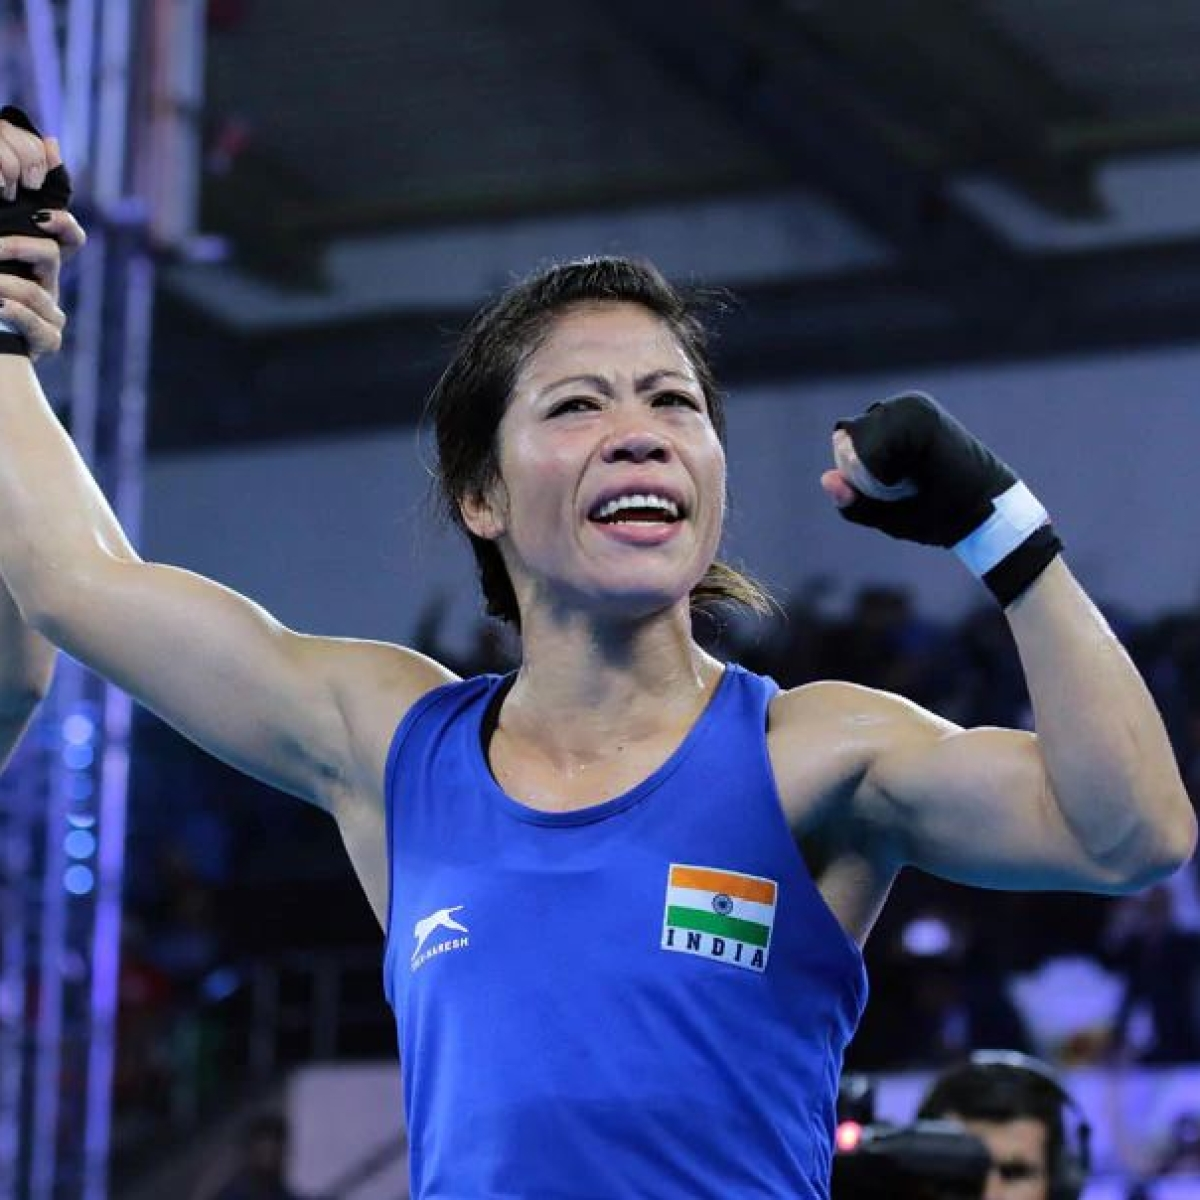 In self-isolation, I have found some freedom: Mary Kom